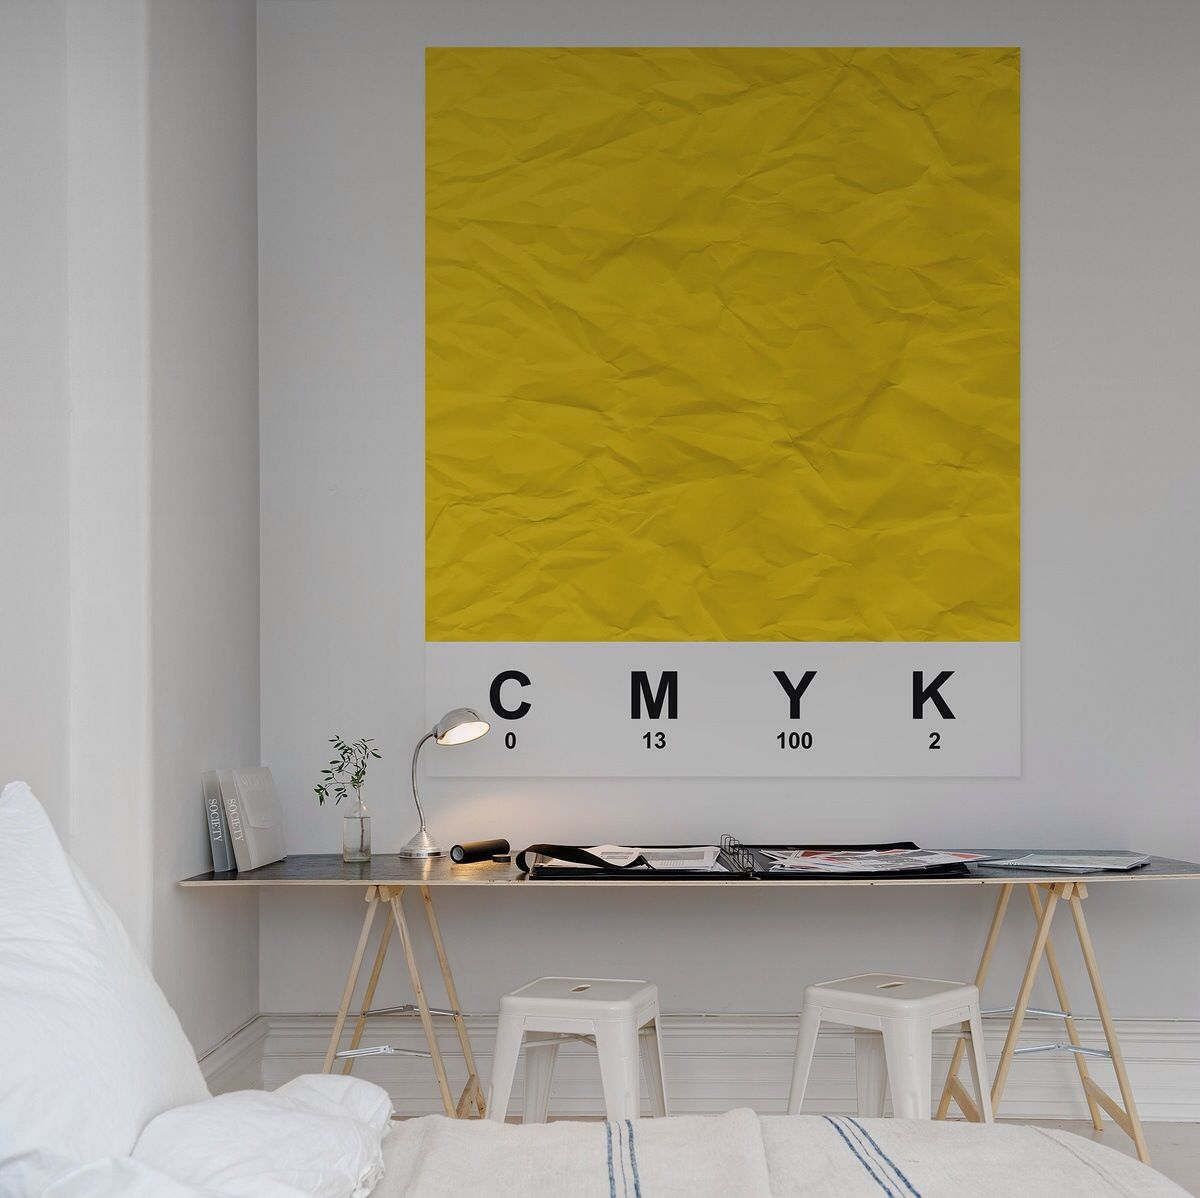 cmyk a compact and minimal workspace workspace pinterest tapeten gelb und arbeitszimmer. Black Bedroom Furniture Sets. Home Design Ideas